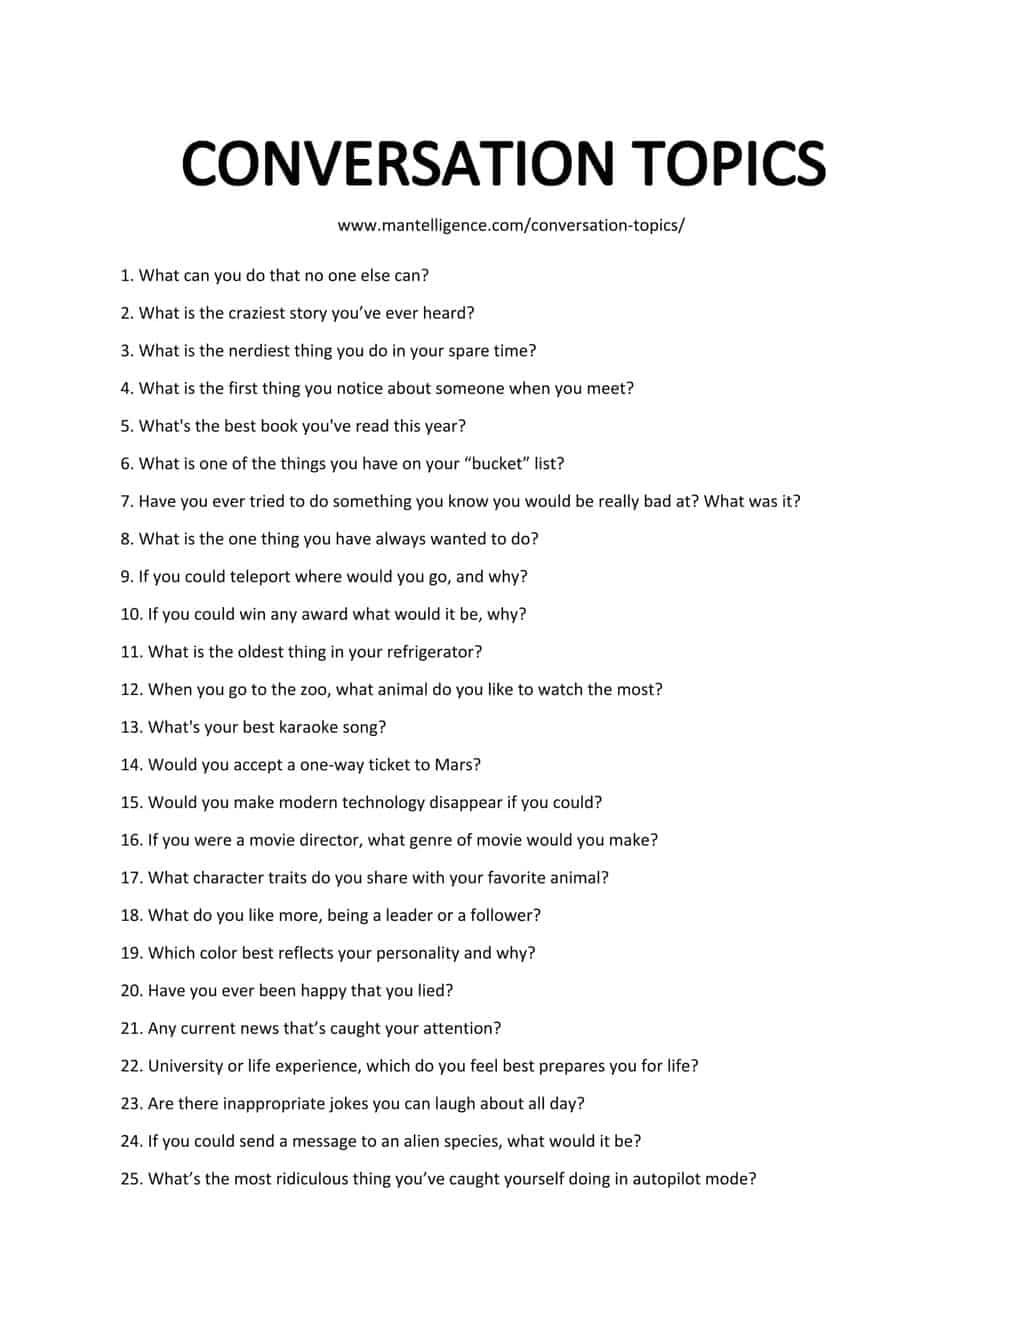 Downloadable list of Conversation Topics